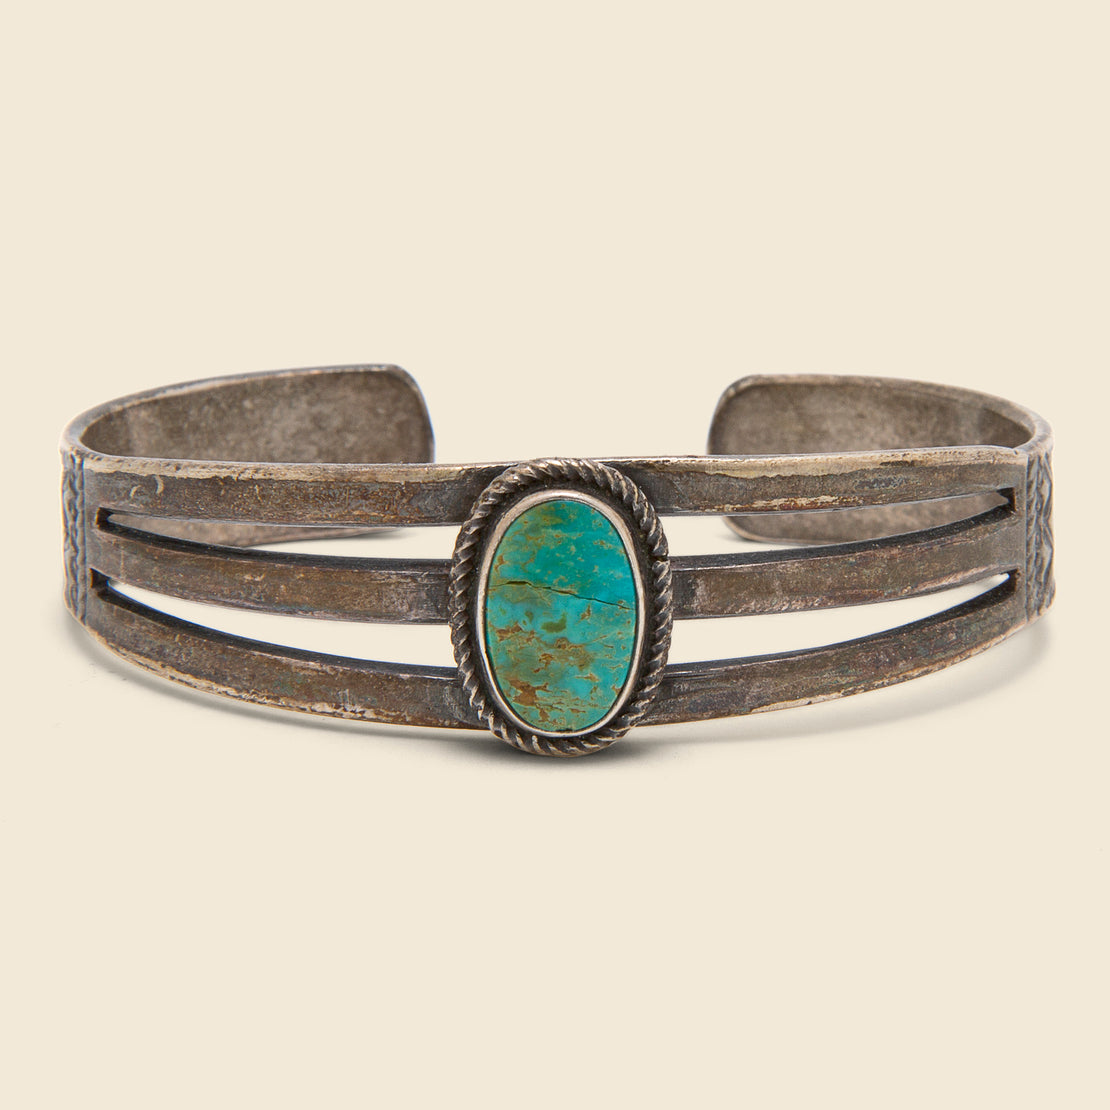 Vintage Single Stone Turquoise Cuff - Silver